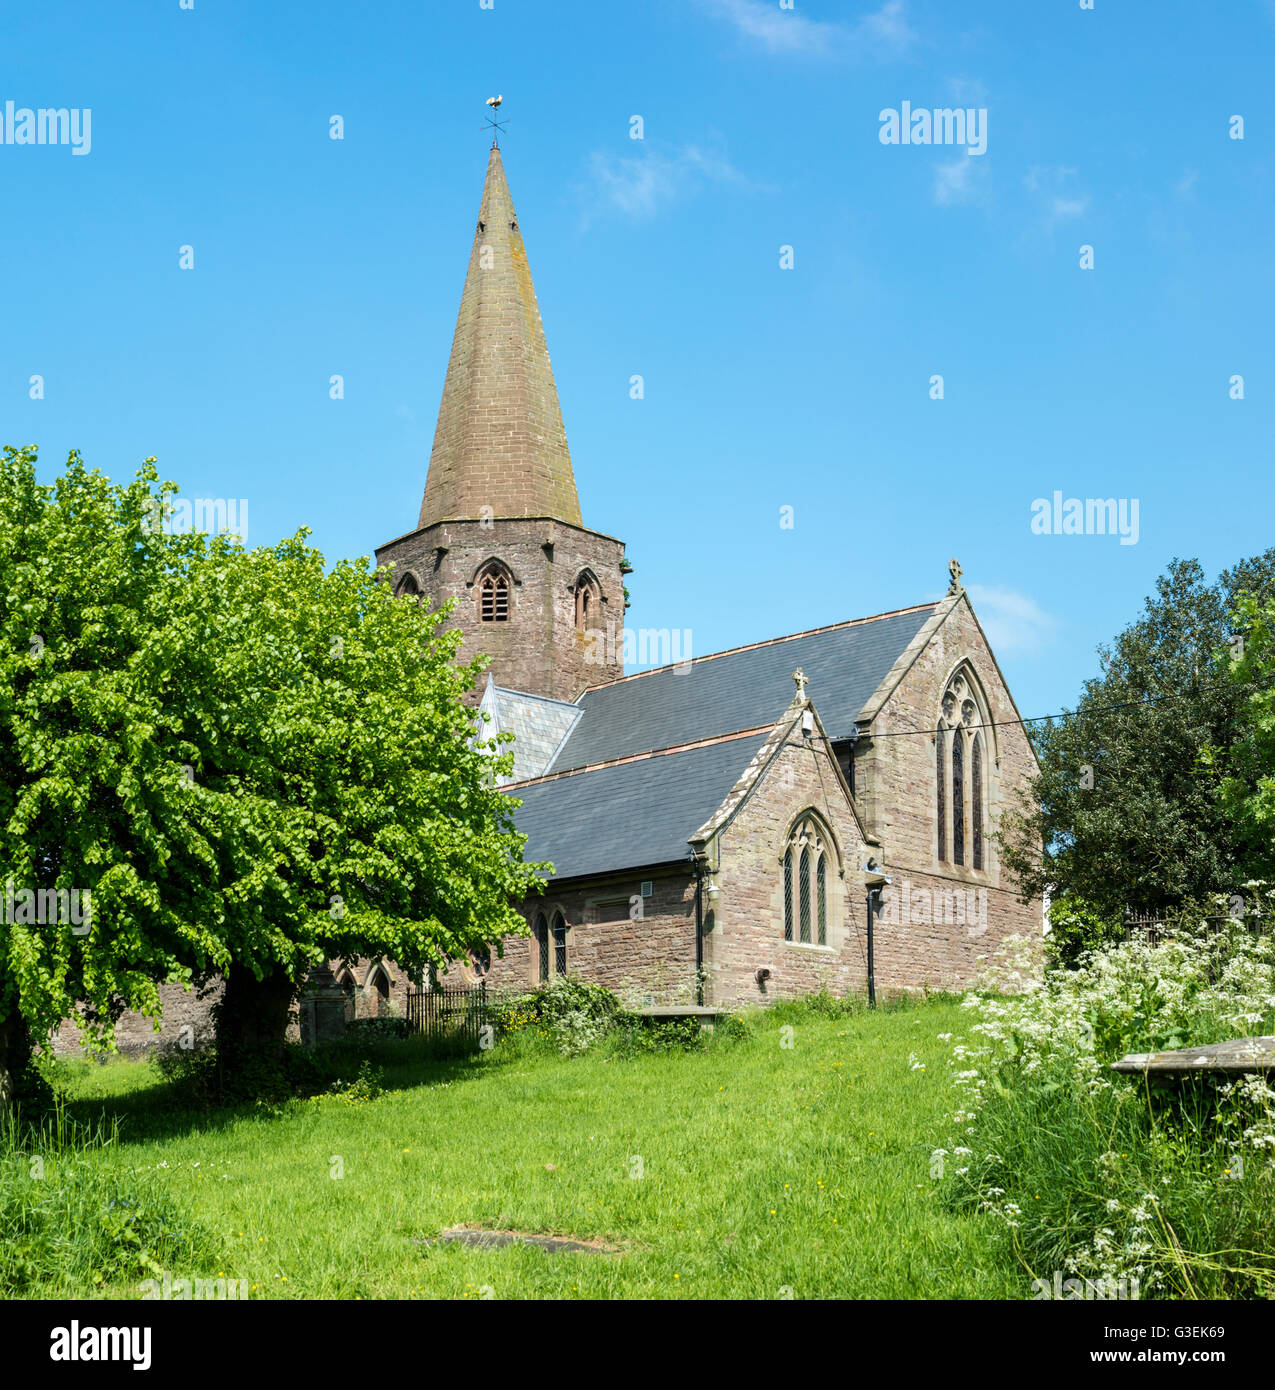 Large country church with spire on a summer day. - Stock Image